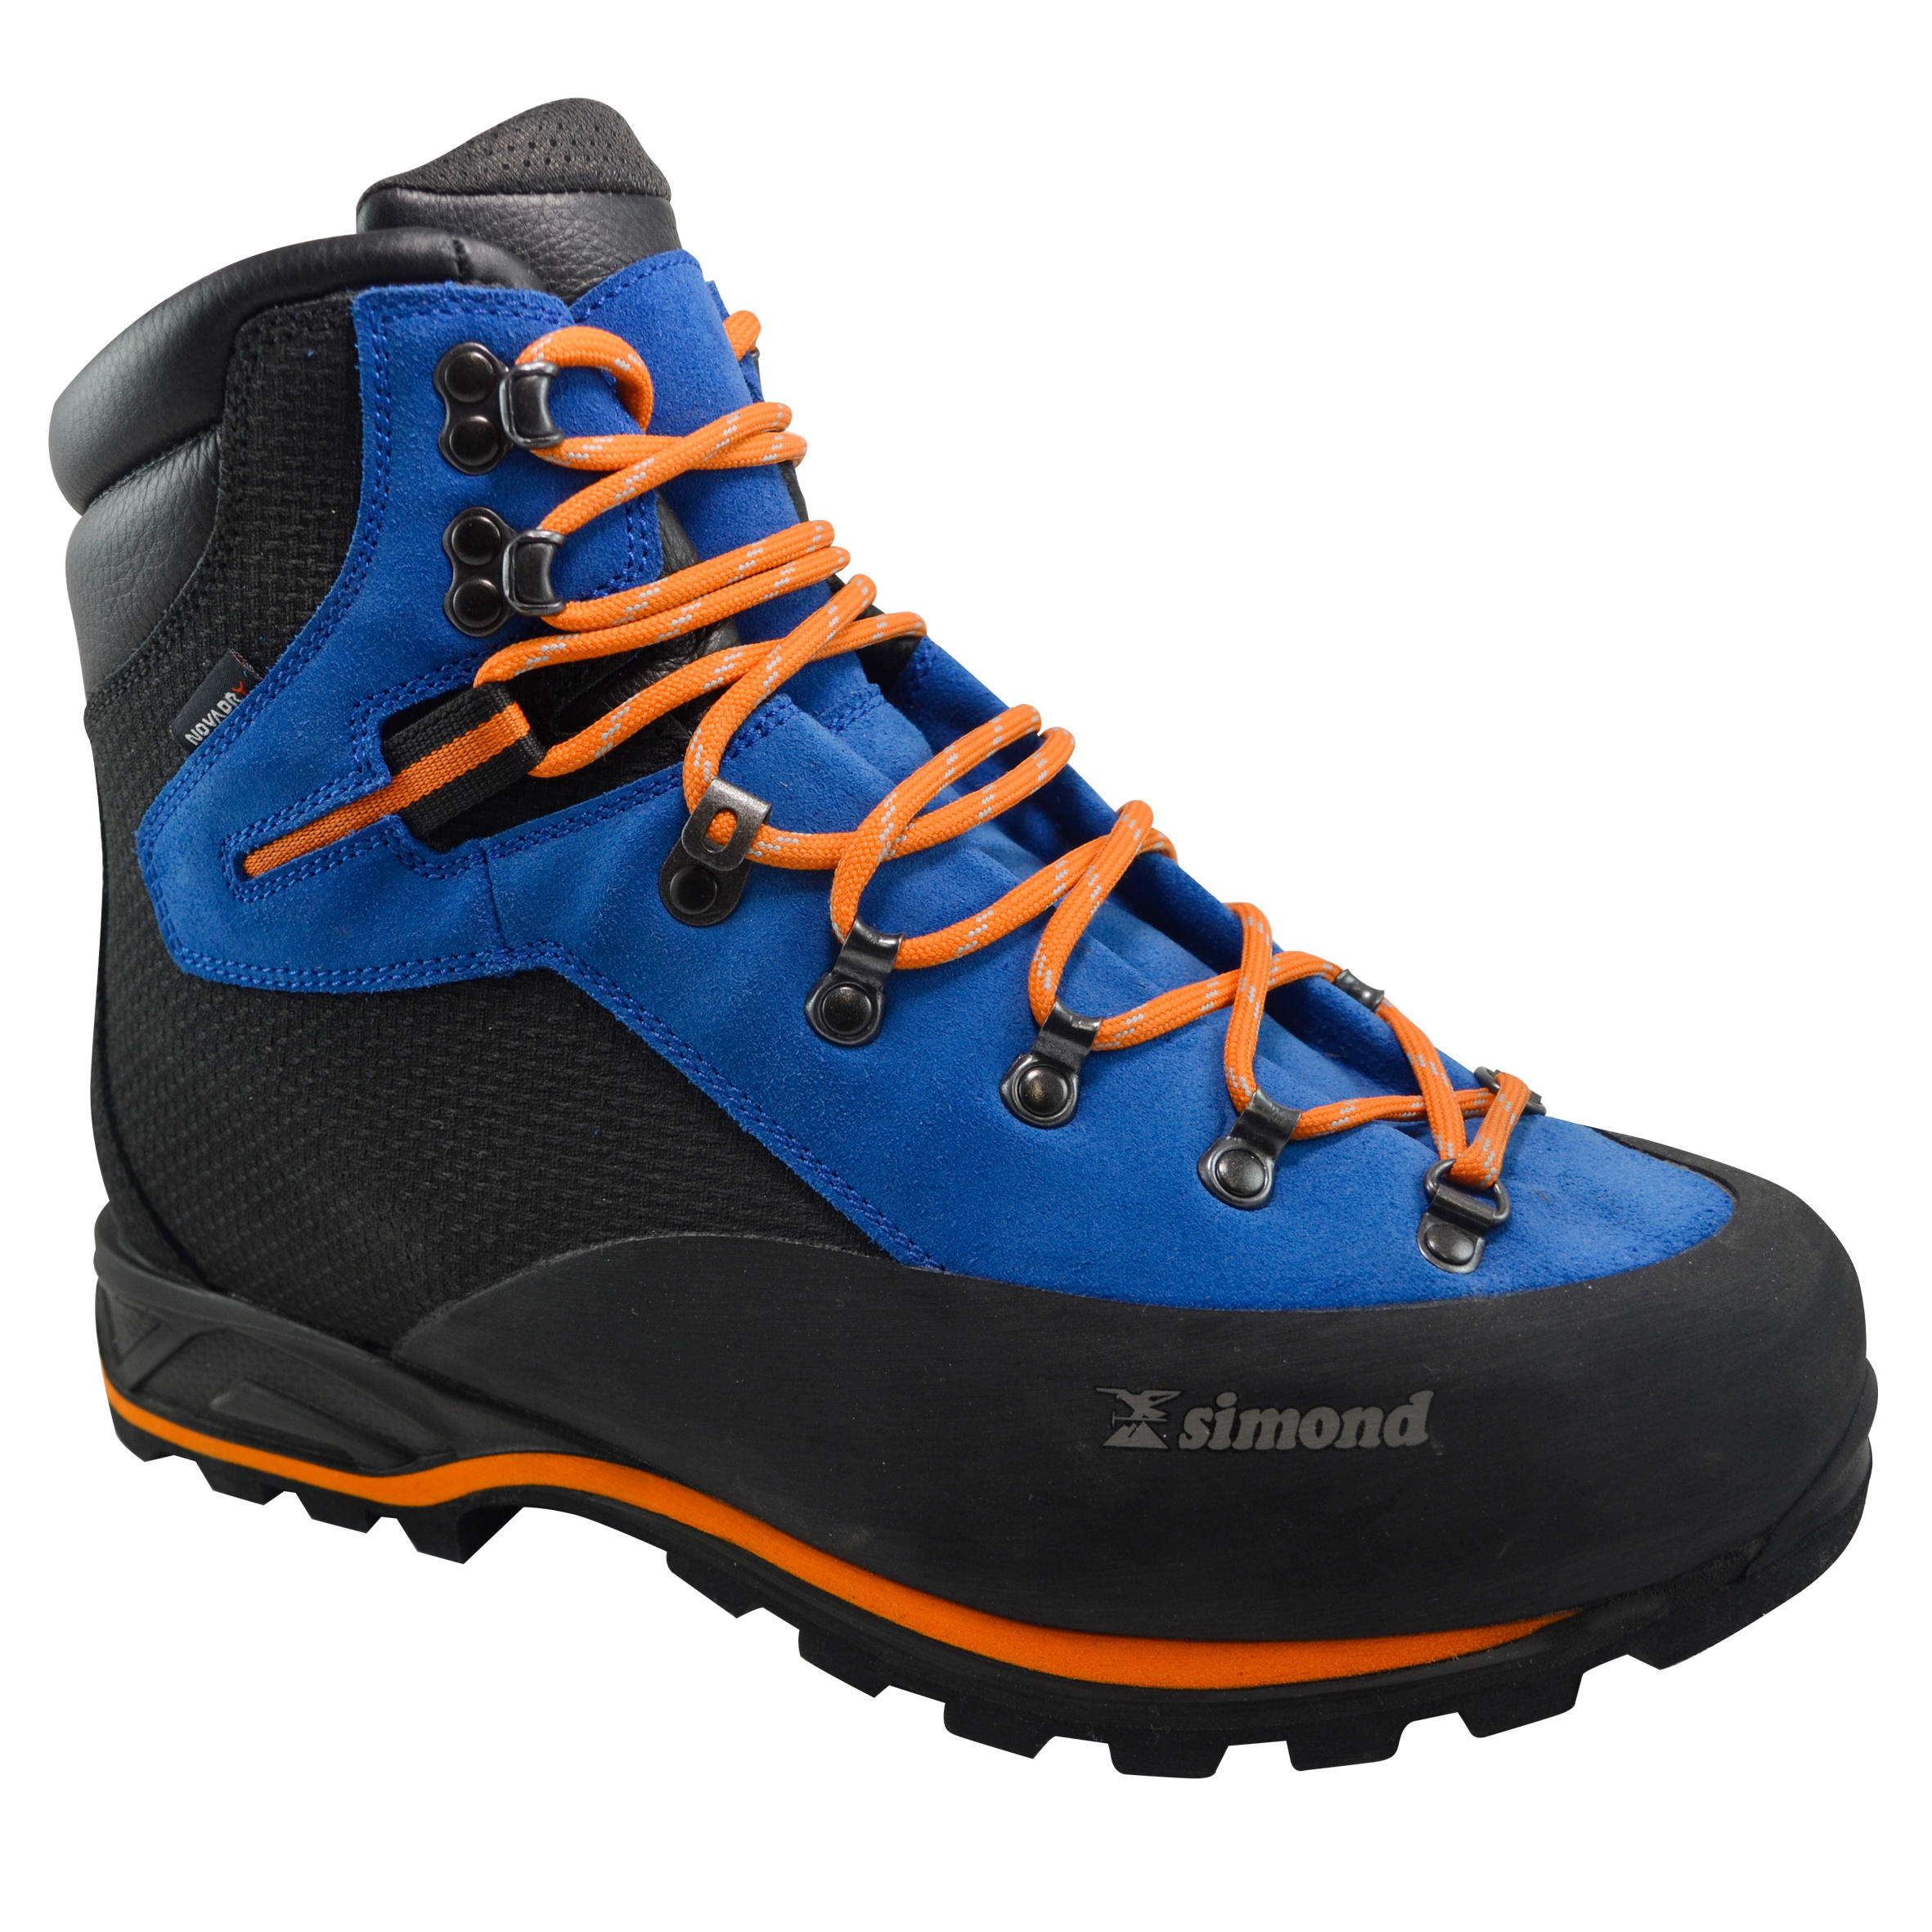 MOUNTAINEERING BOOTS - BLUE STANDARD SIZES41_SEMI_COLON_ 42_SEMI_COLON_ 43_SEMI_COLON_ 44_SEMI_COLON_ 45_SEMI_COLON_ 46